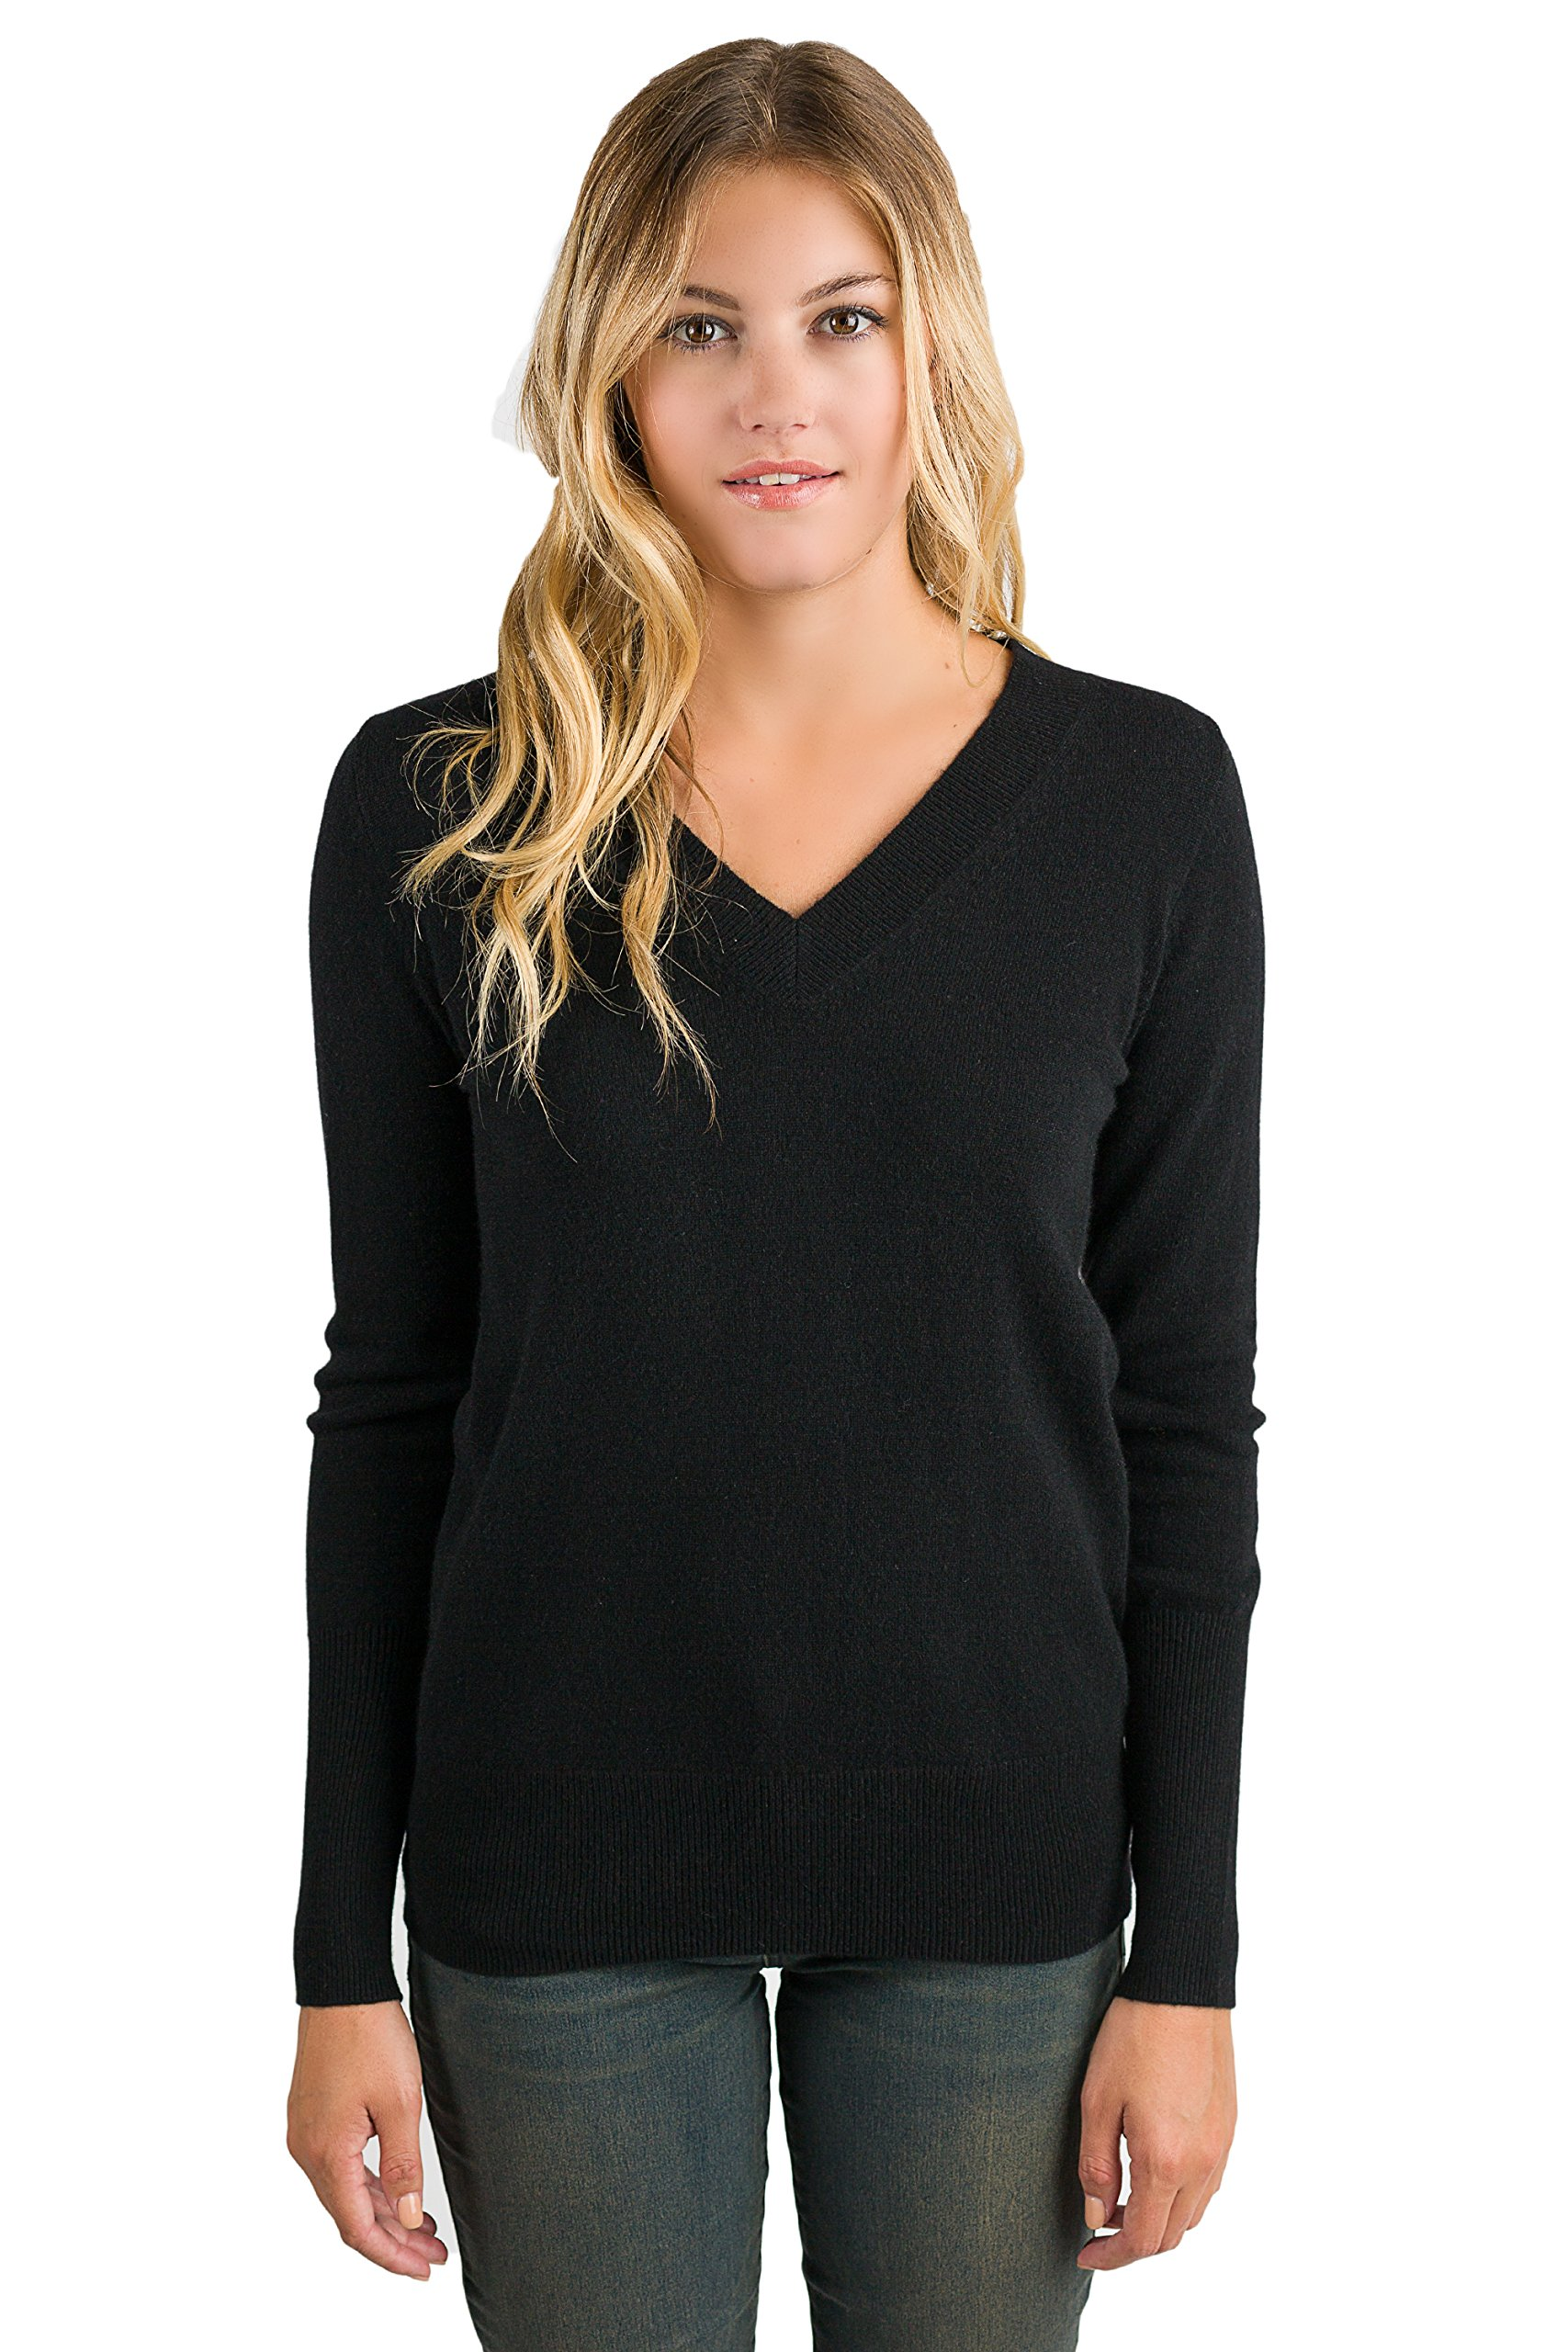 JENNIE LIU Women's 100% Pure Cashmere Long Sleeve Ava V Neck Pullover Sweater (PM, Black) by JENNIE LIU